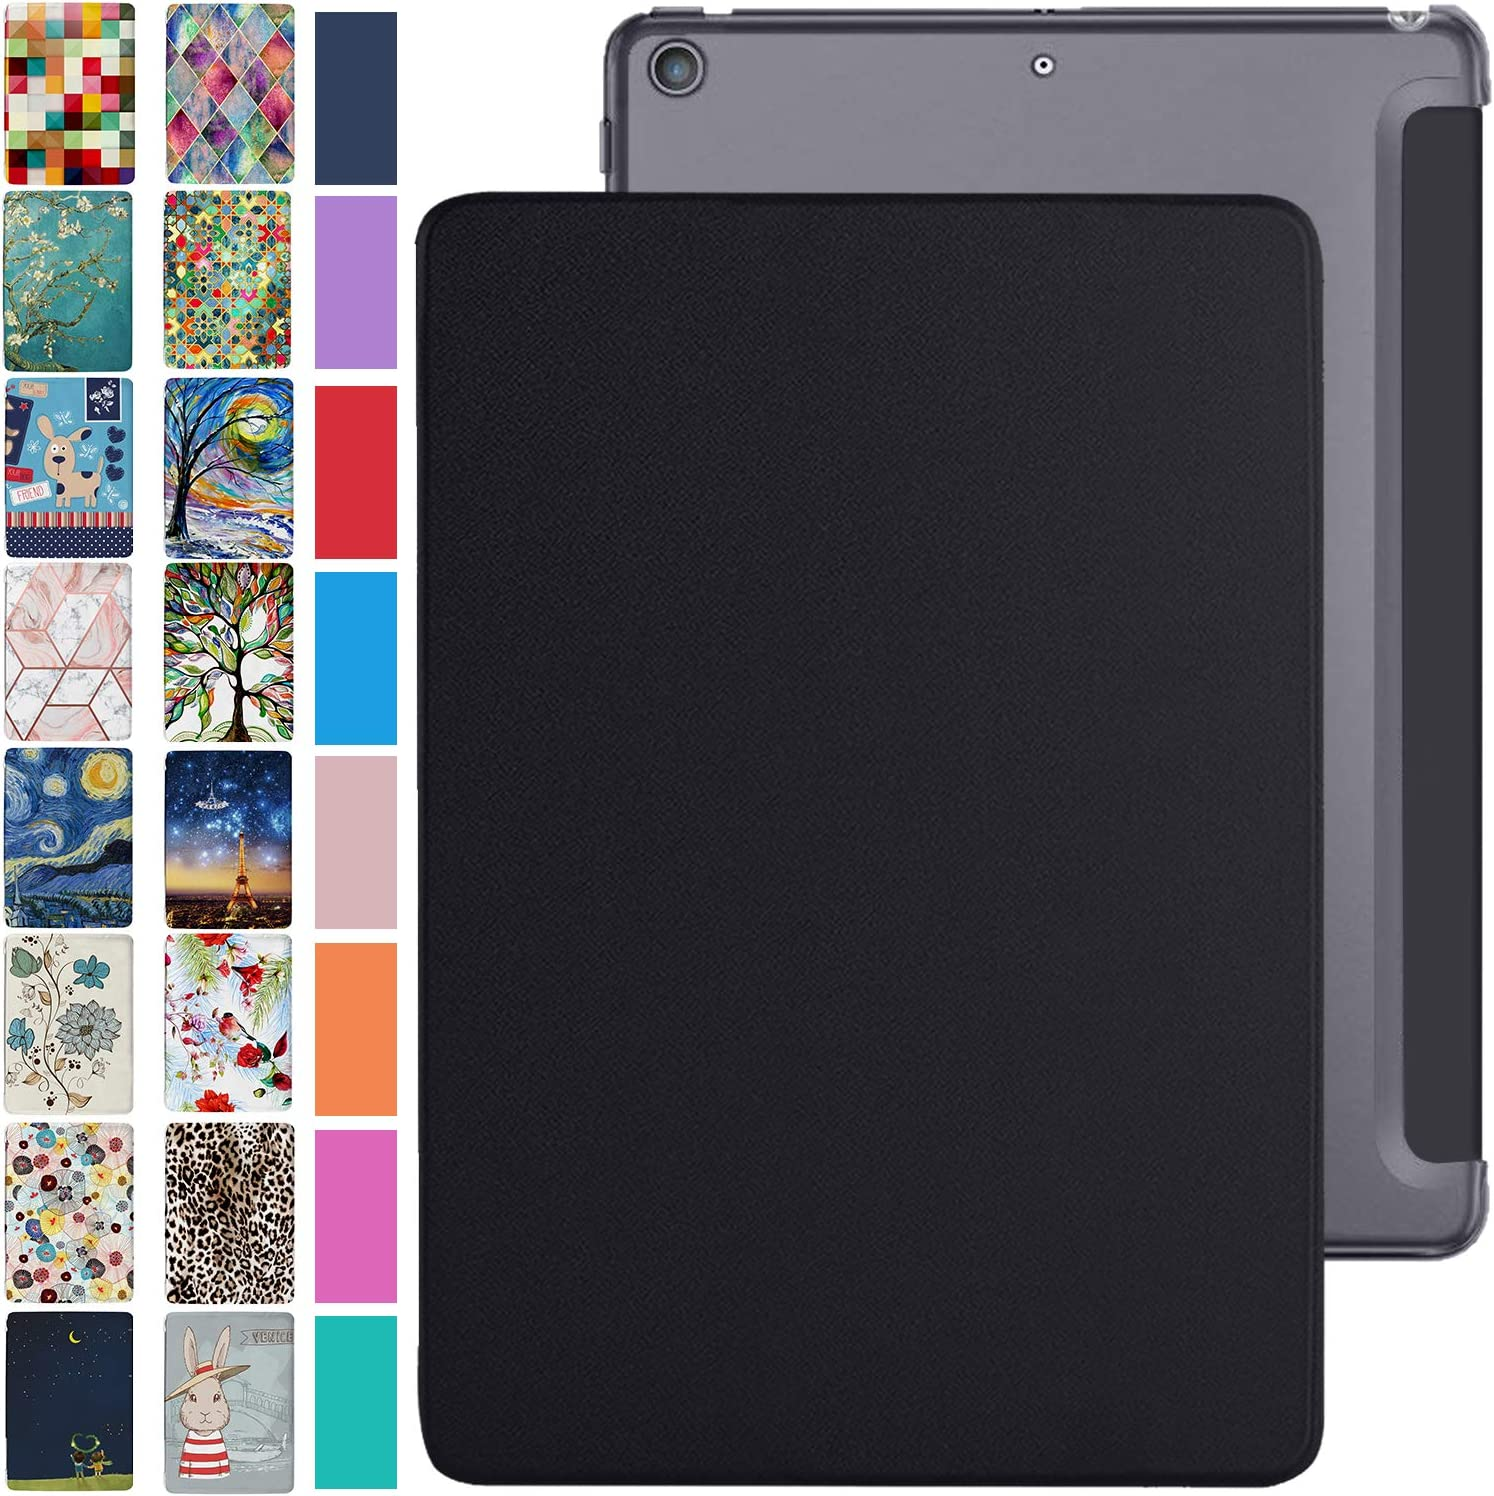 DuraSafe Cases For iPad Mini 7.9 Inch 4 Gen [ Mini 4th Generation 2015 ] TriFold PC Lightweight Smart PU Leather Protective Hard Back Cover - Black